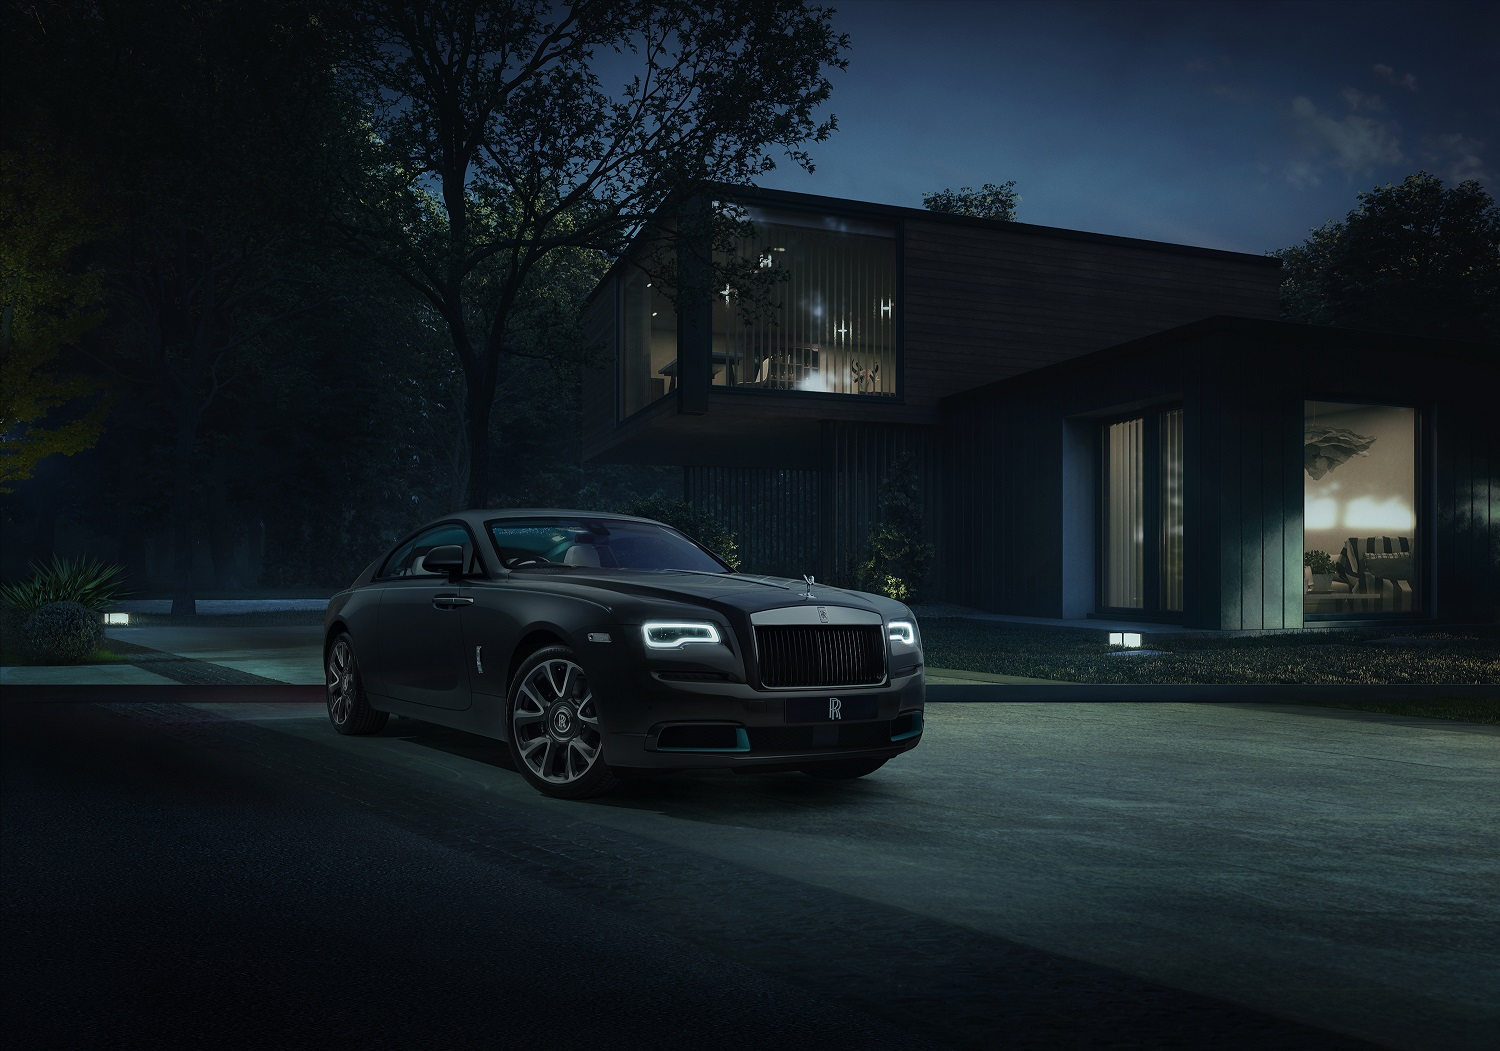 Rolls-Royce Reveals Subtle Clues To Mysterious Wraith Kryptos Code